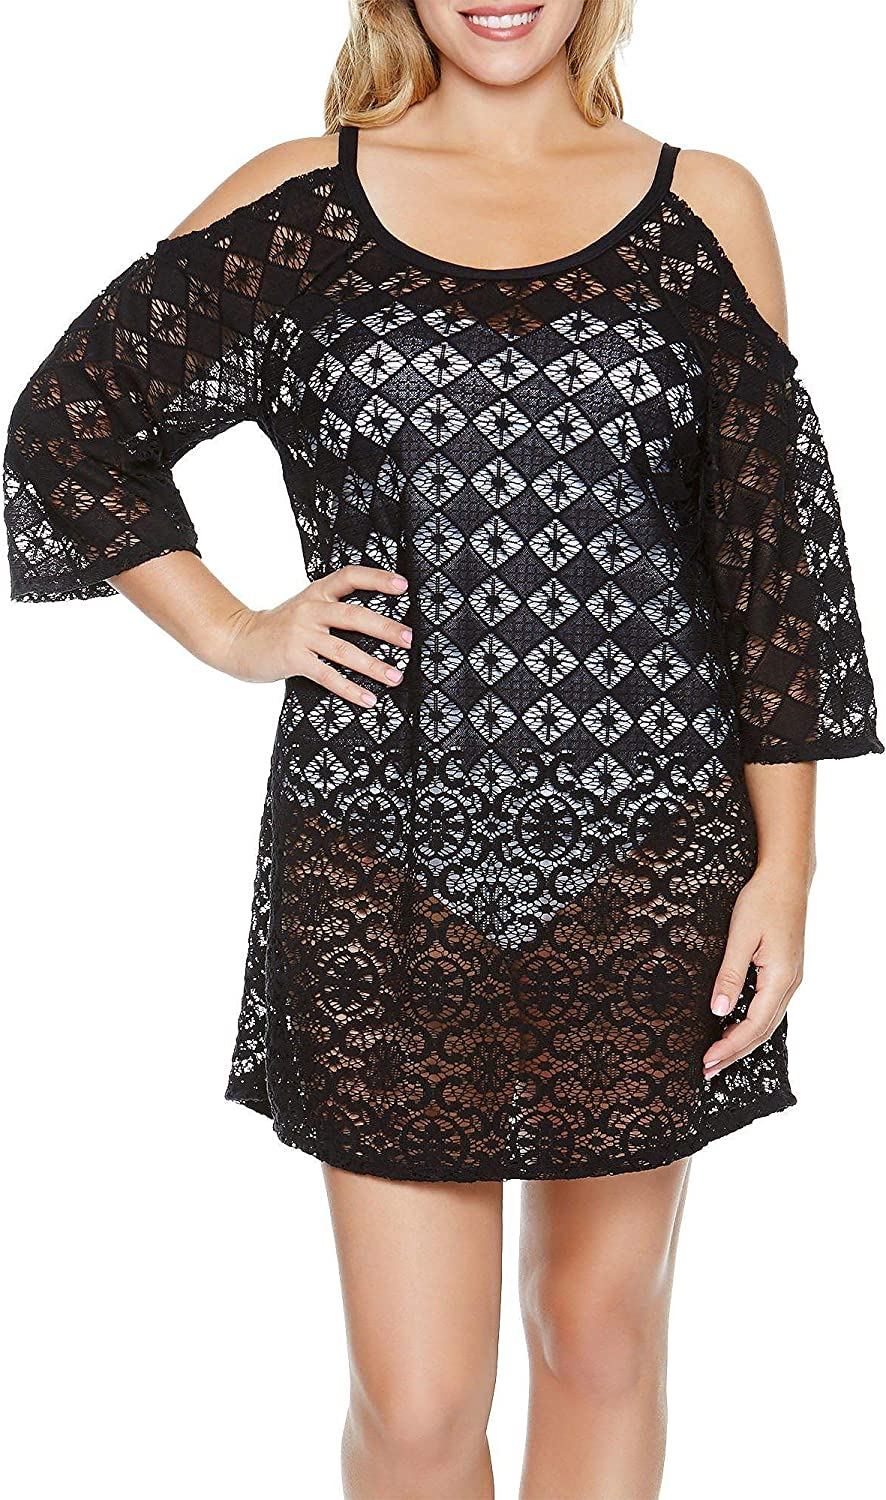 Dotti Lace Cold Shoulder Swimsuit Cover Up